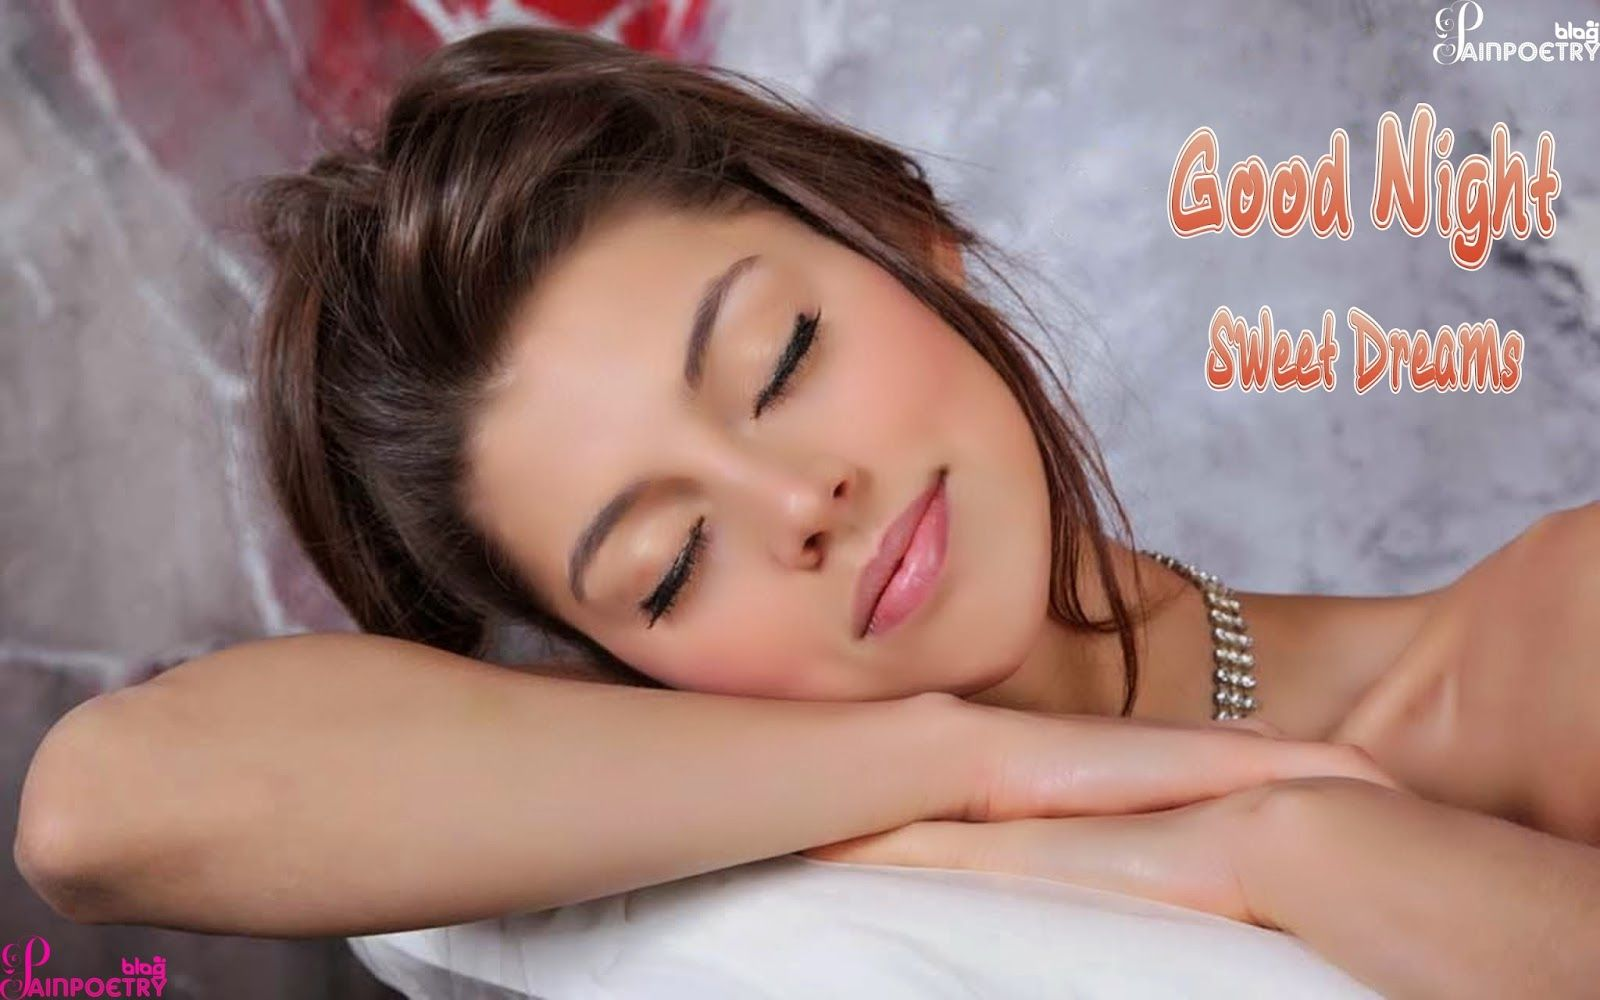 Good Night Romantic Wallpapers With Girl Photo And Sweet Dreams Hd Romantic Good Night Good Night Wallpaper Good Night Image Sweet dreams good night images hd 1080p